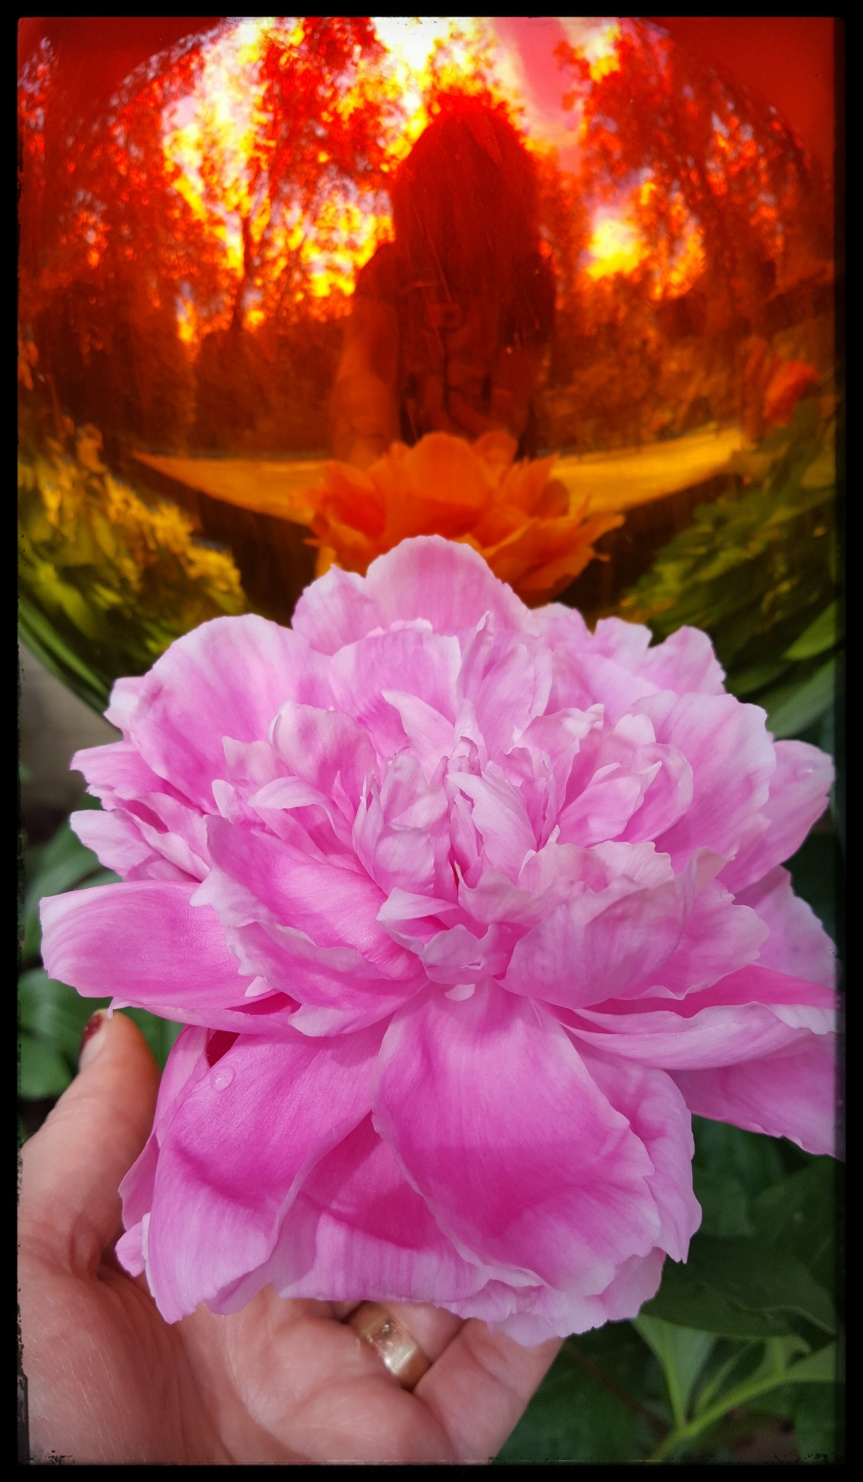 Peony. Photo by Dragonfly Leathrum